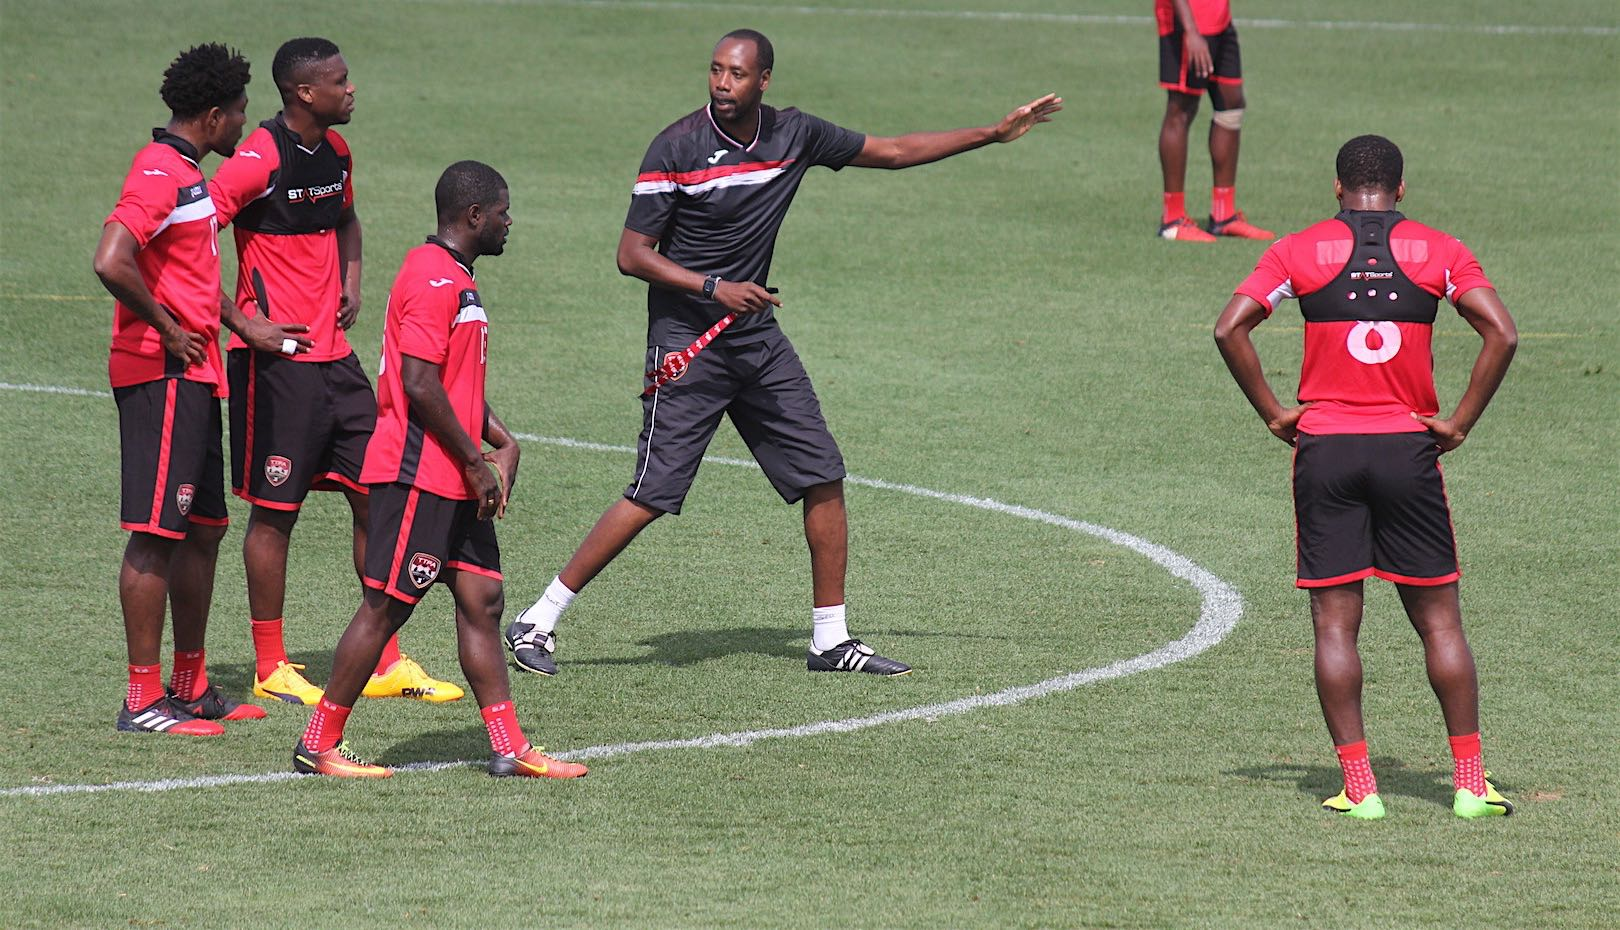 T&T's men stay focused ahead of Gold Cup opener.